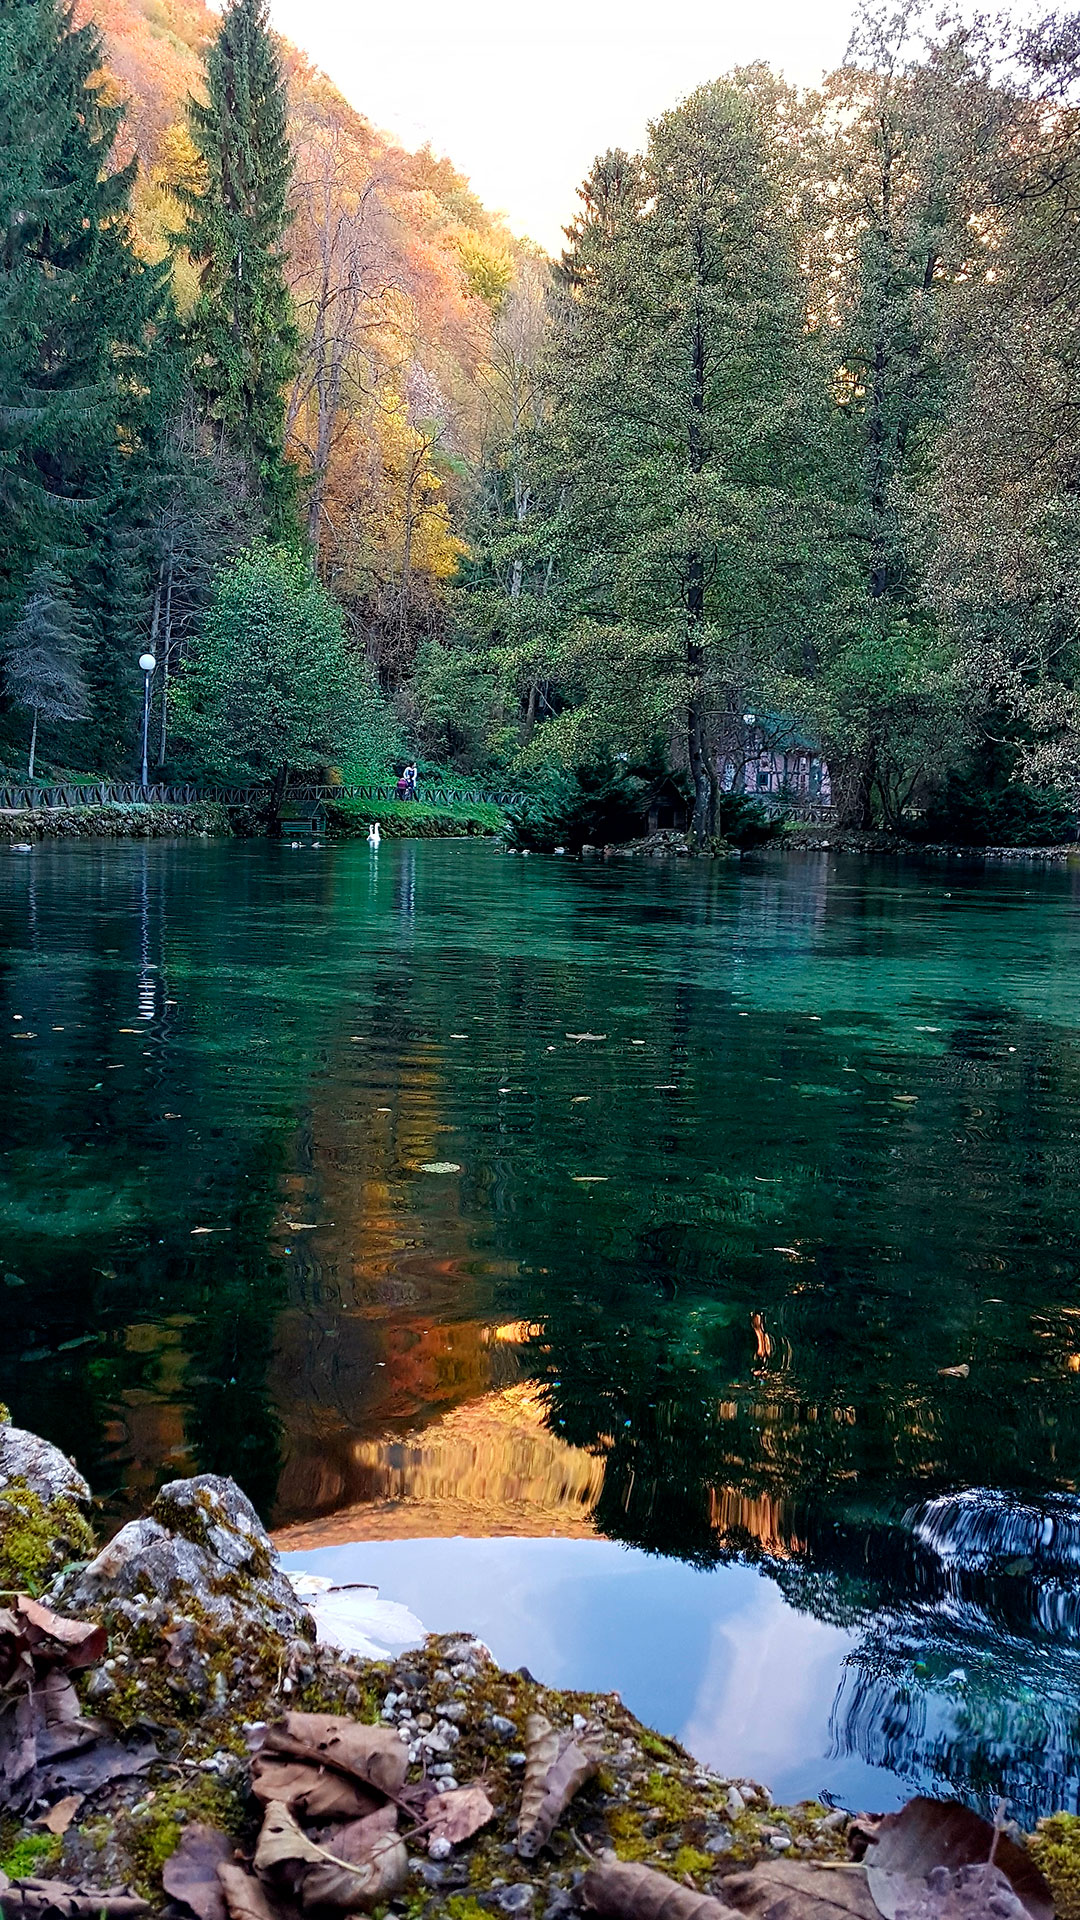 iPhone wallpaper lake trees 3Wallpapers : notre sélection de fonds d'écran du 25/04/2018